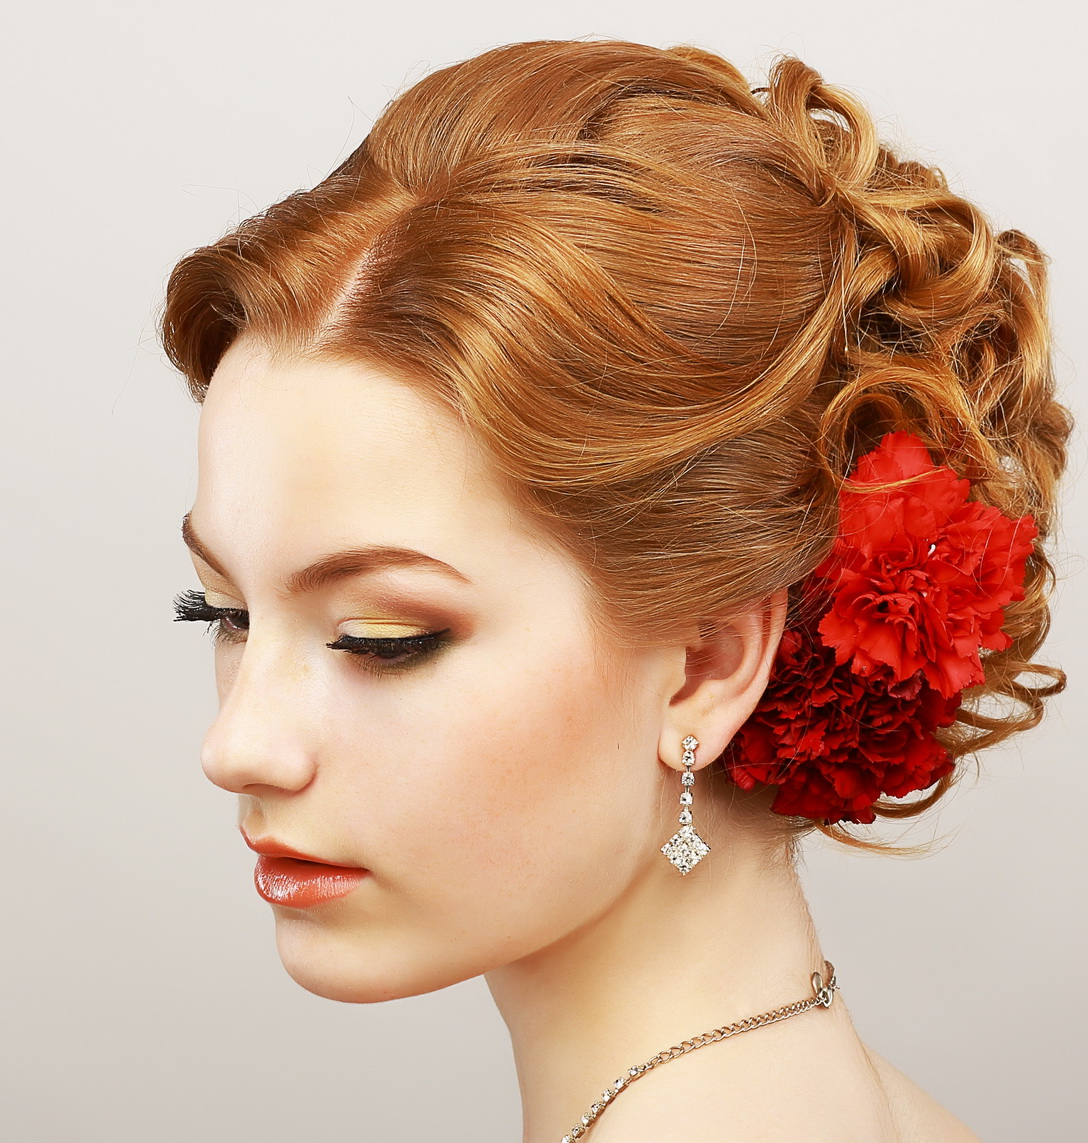 16 Easy Prom Hairstyles For Short And Medium Length Hair In Most Up To Date Easy Curled Prom Updos (View 1 of 20)